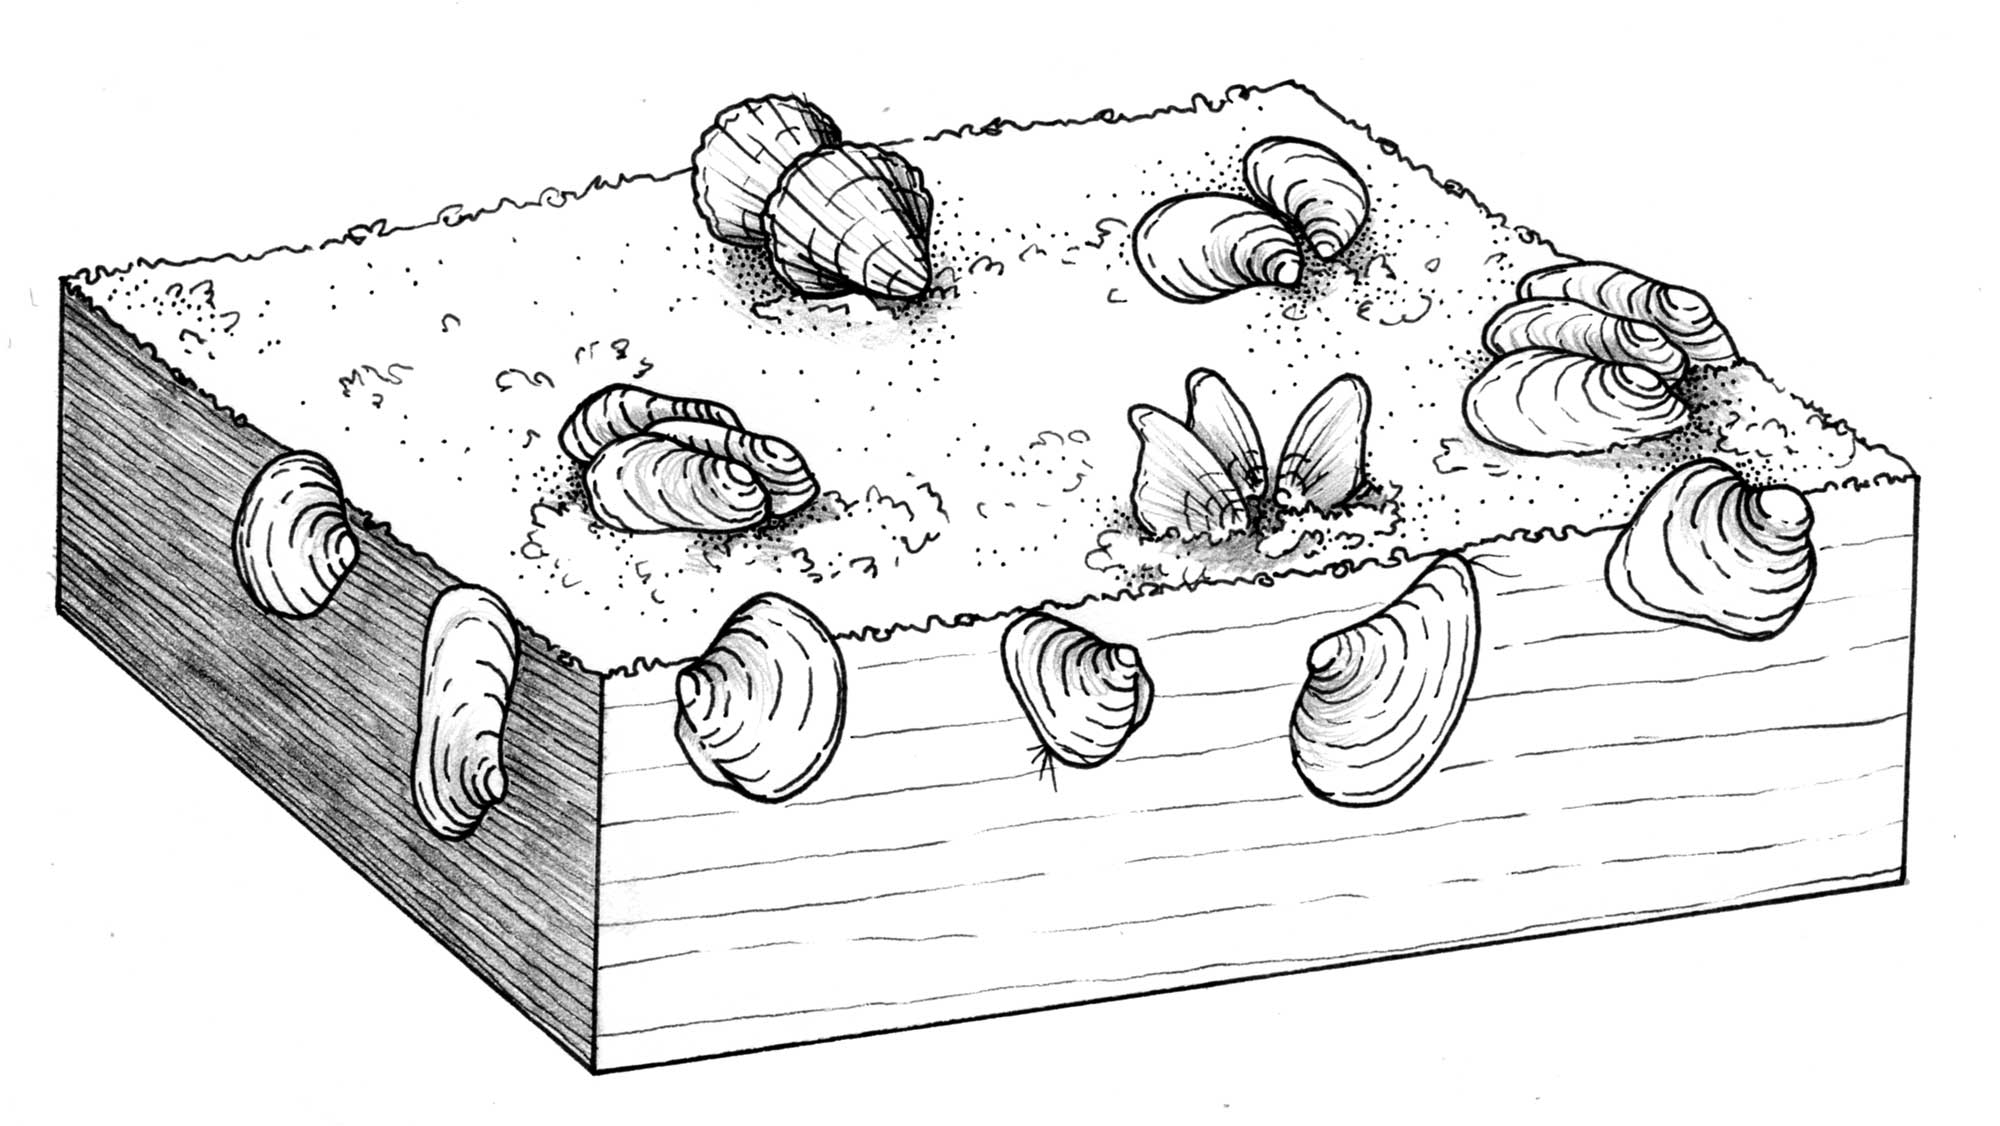 Illustration of the life habits of Ordovician bivalves.